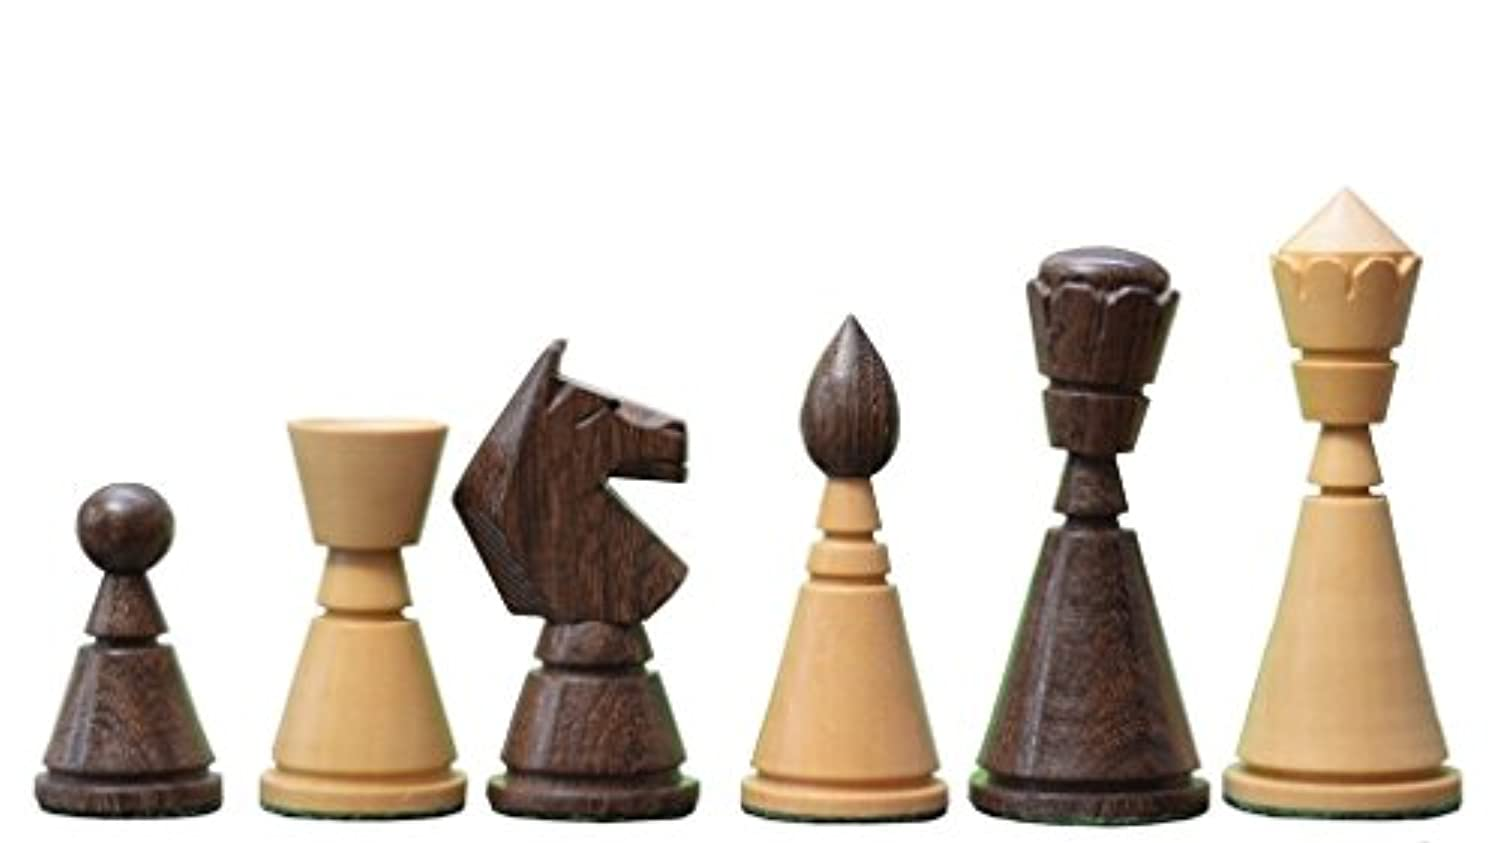 Chessbazaar Reproduced Antique Series Wooden Chess Pieces In Shesham & Box Wood